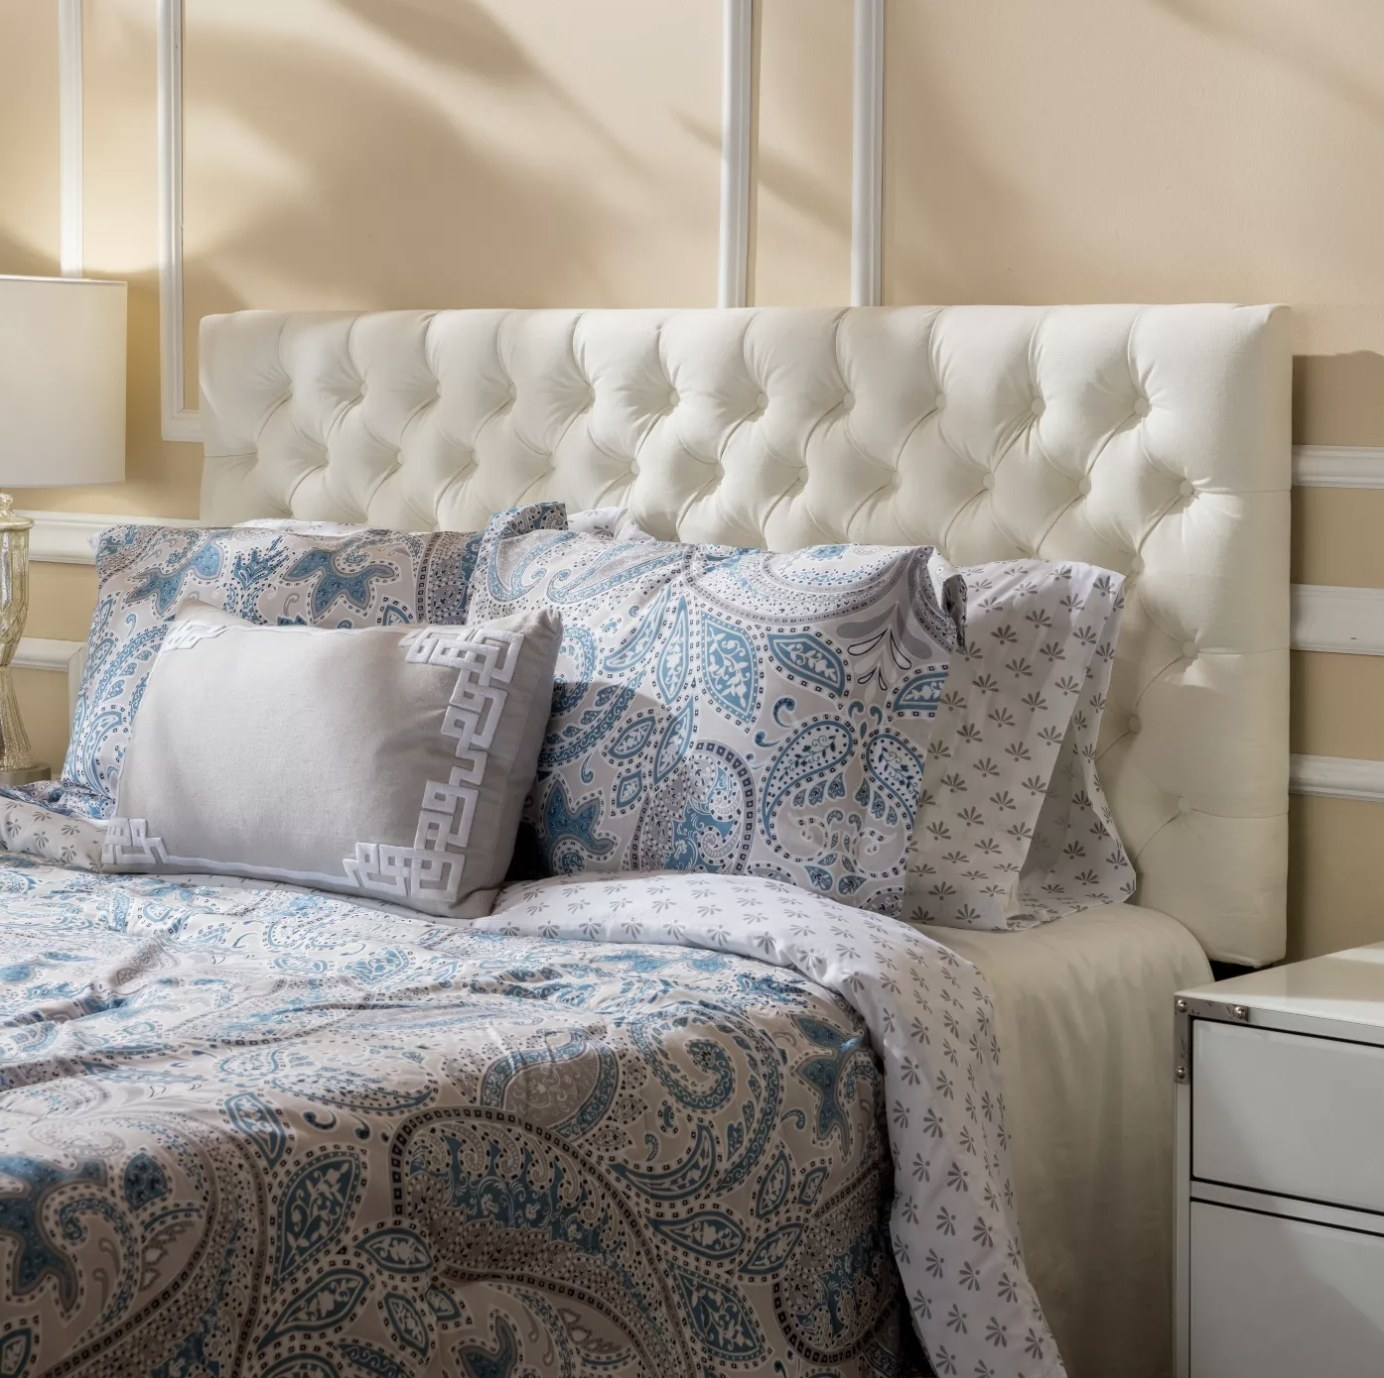 The white tufted headboard